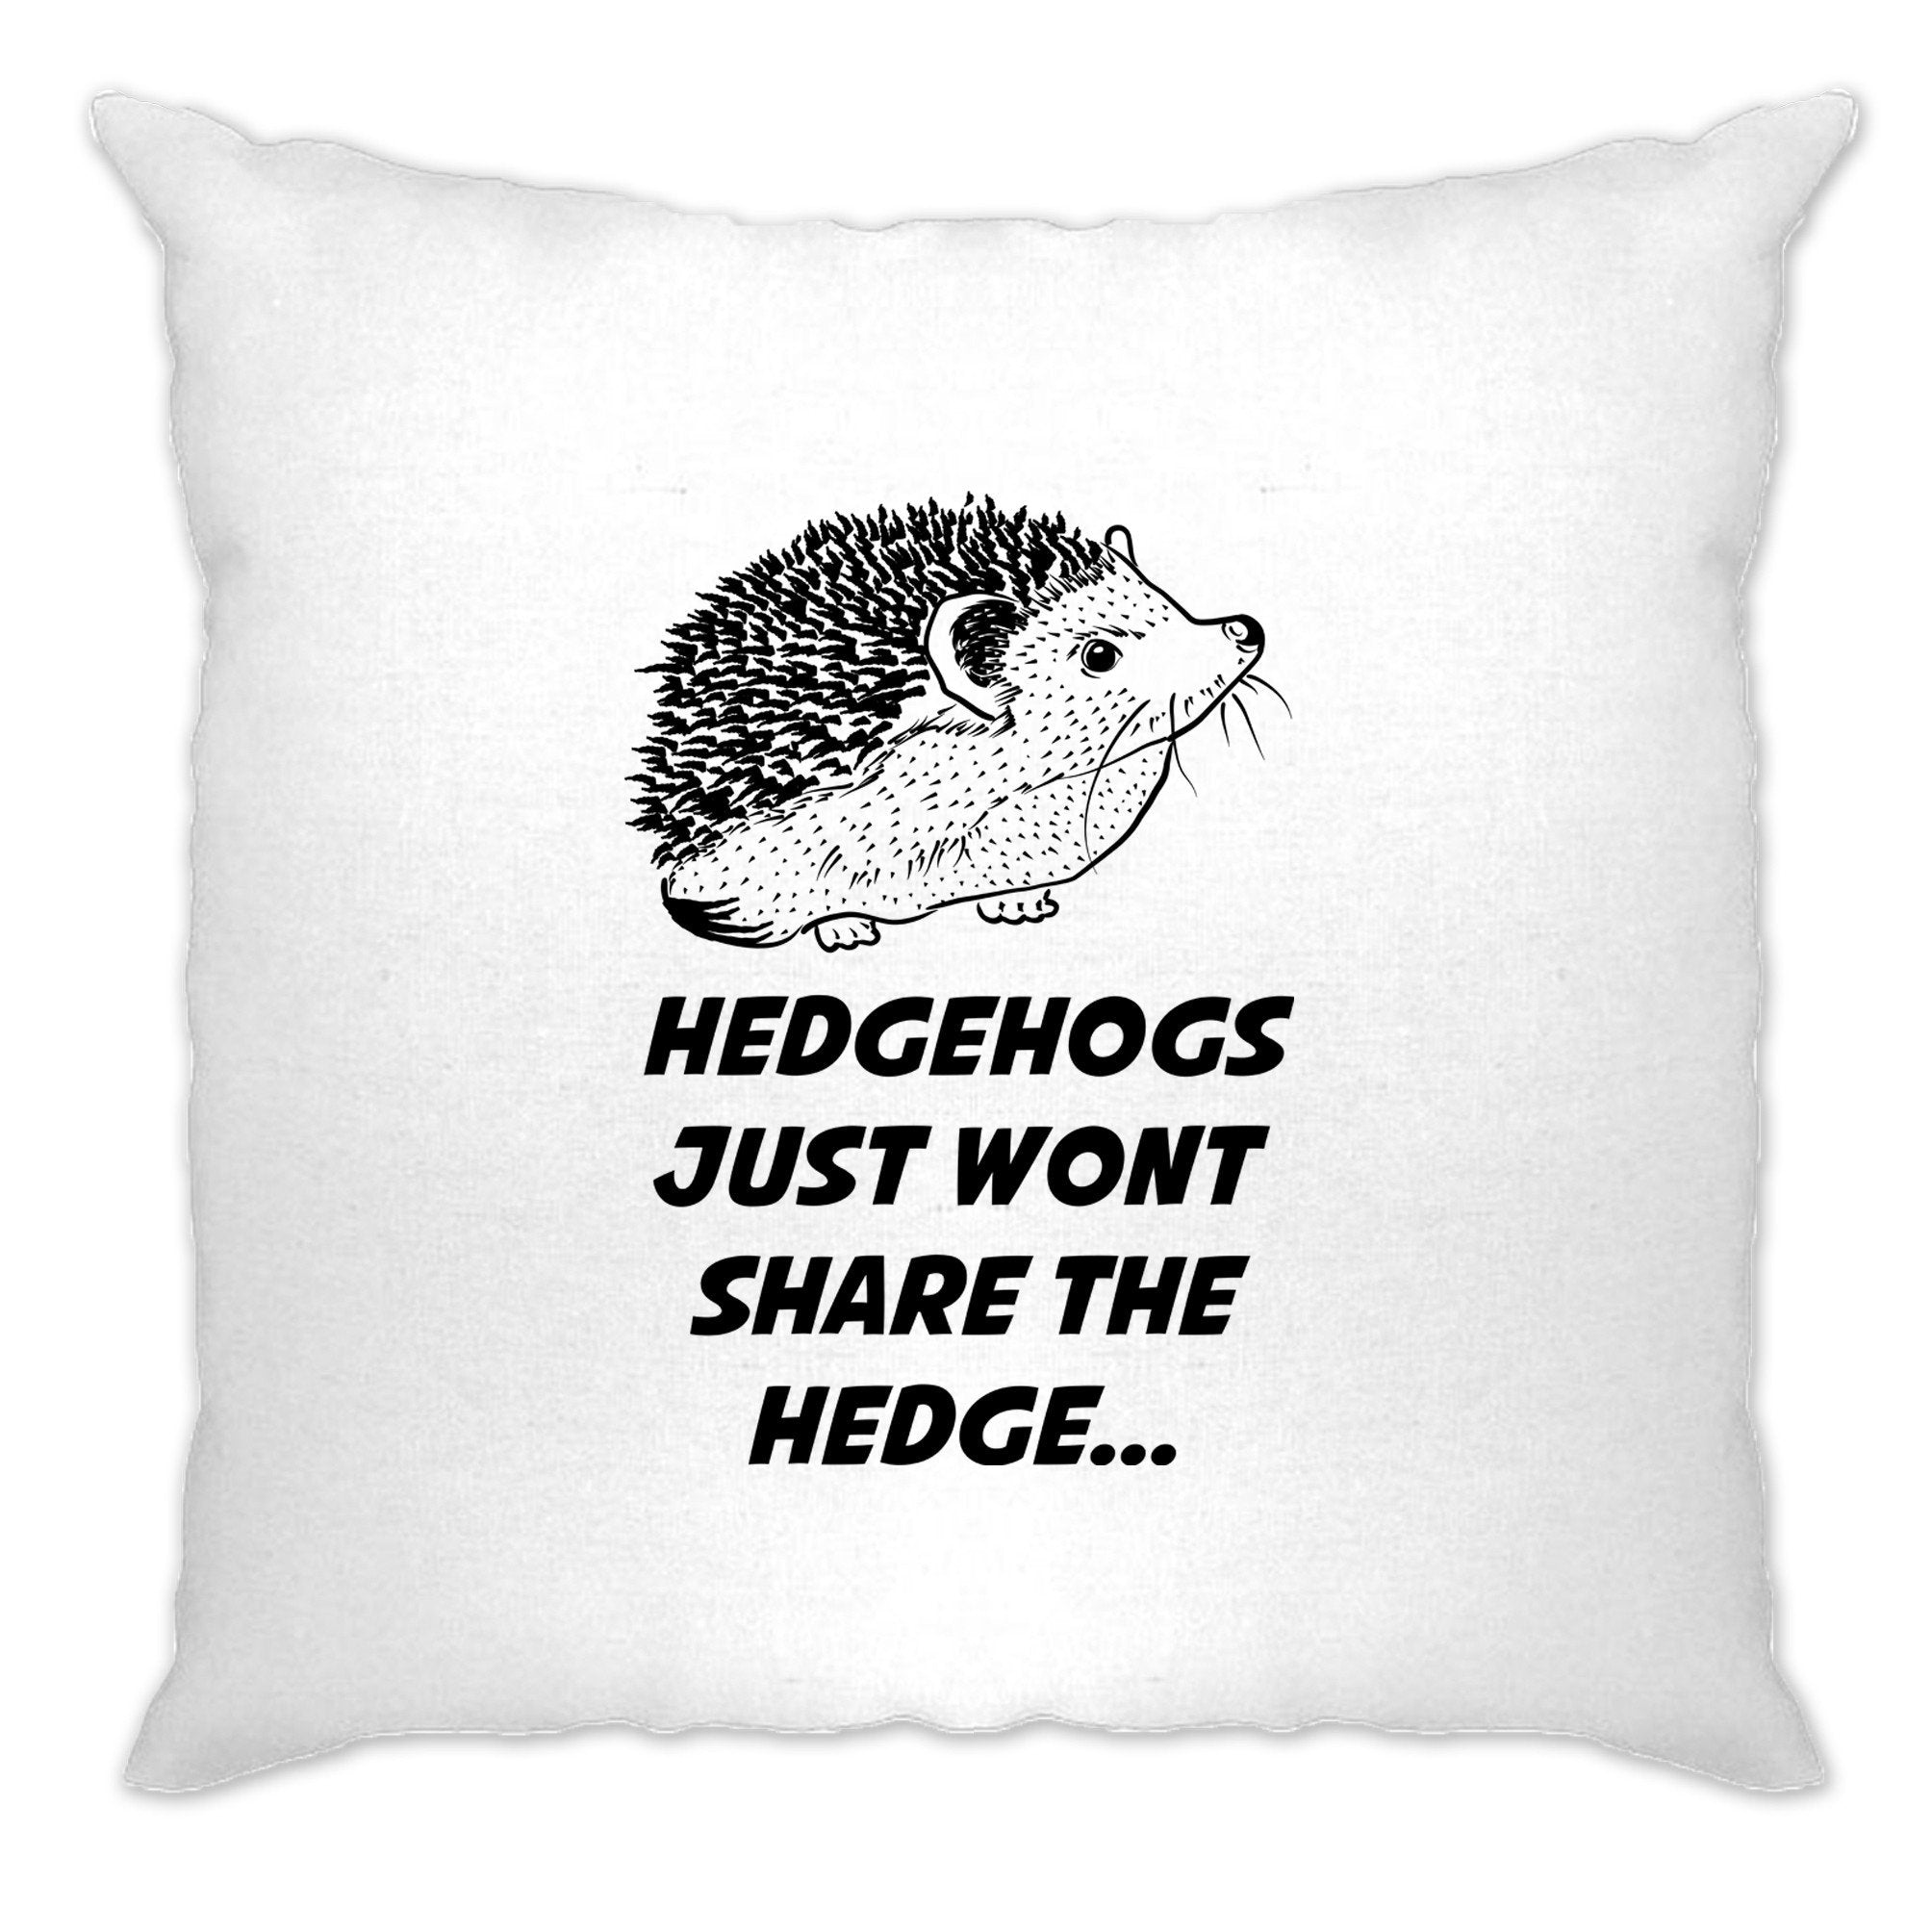 Joke Pun Cushion Cover Hedgehogs Just Won't Share The Hedge